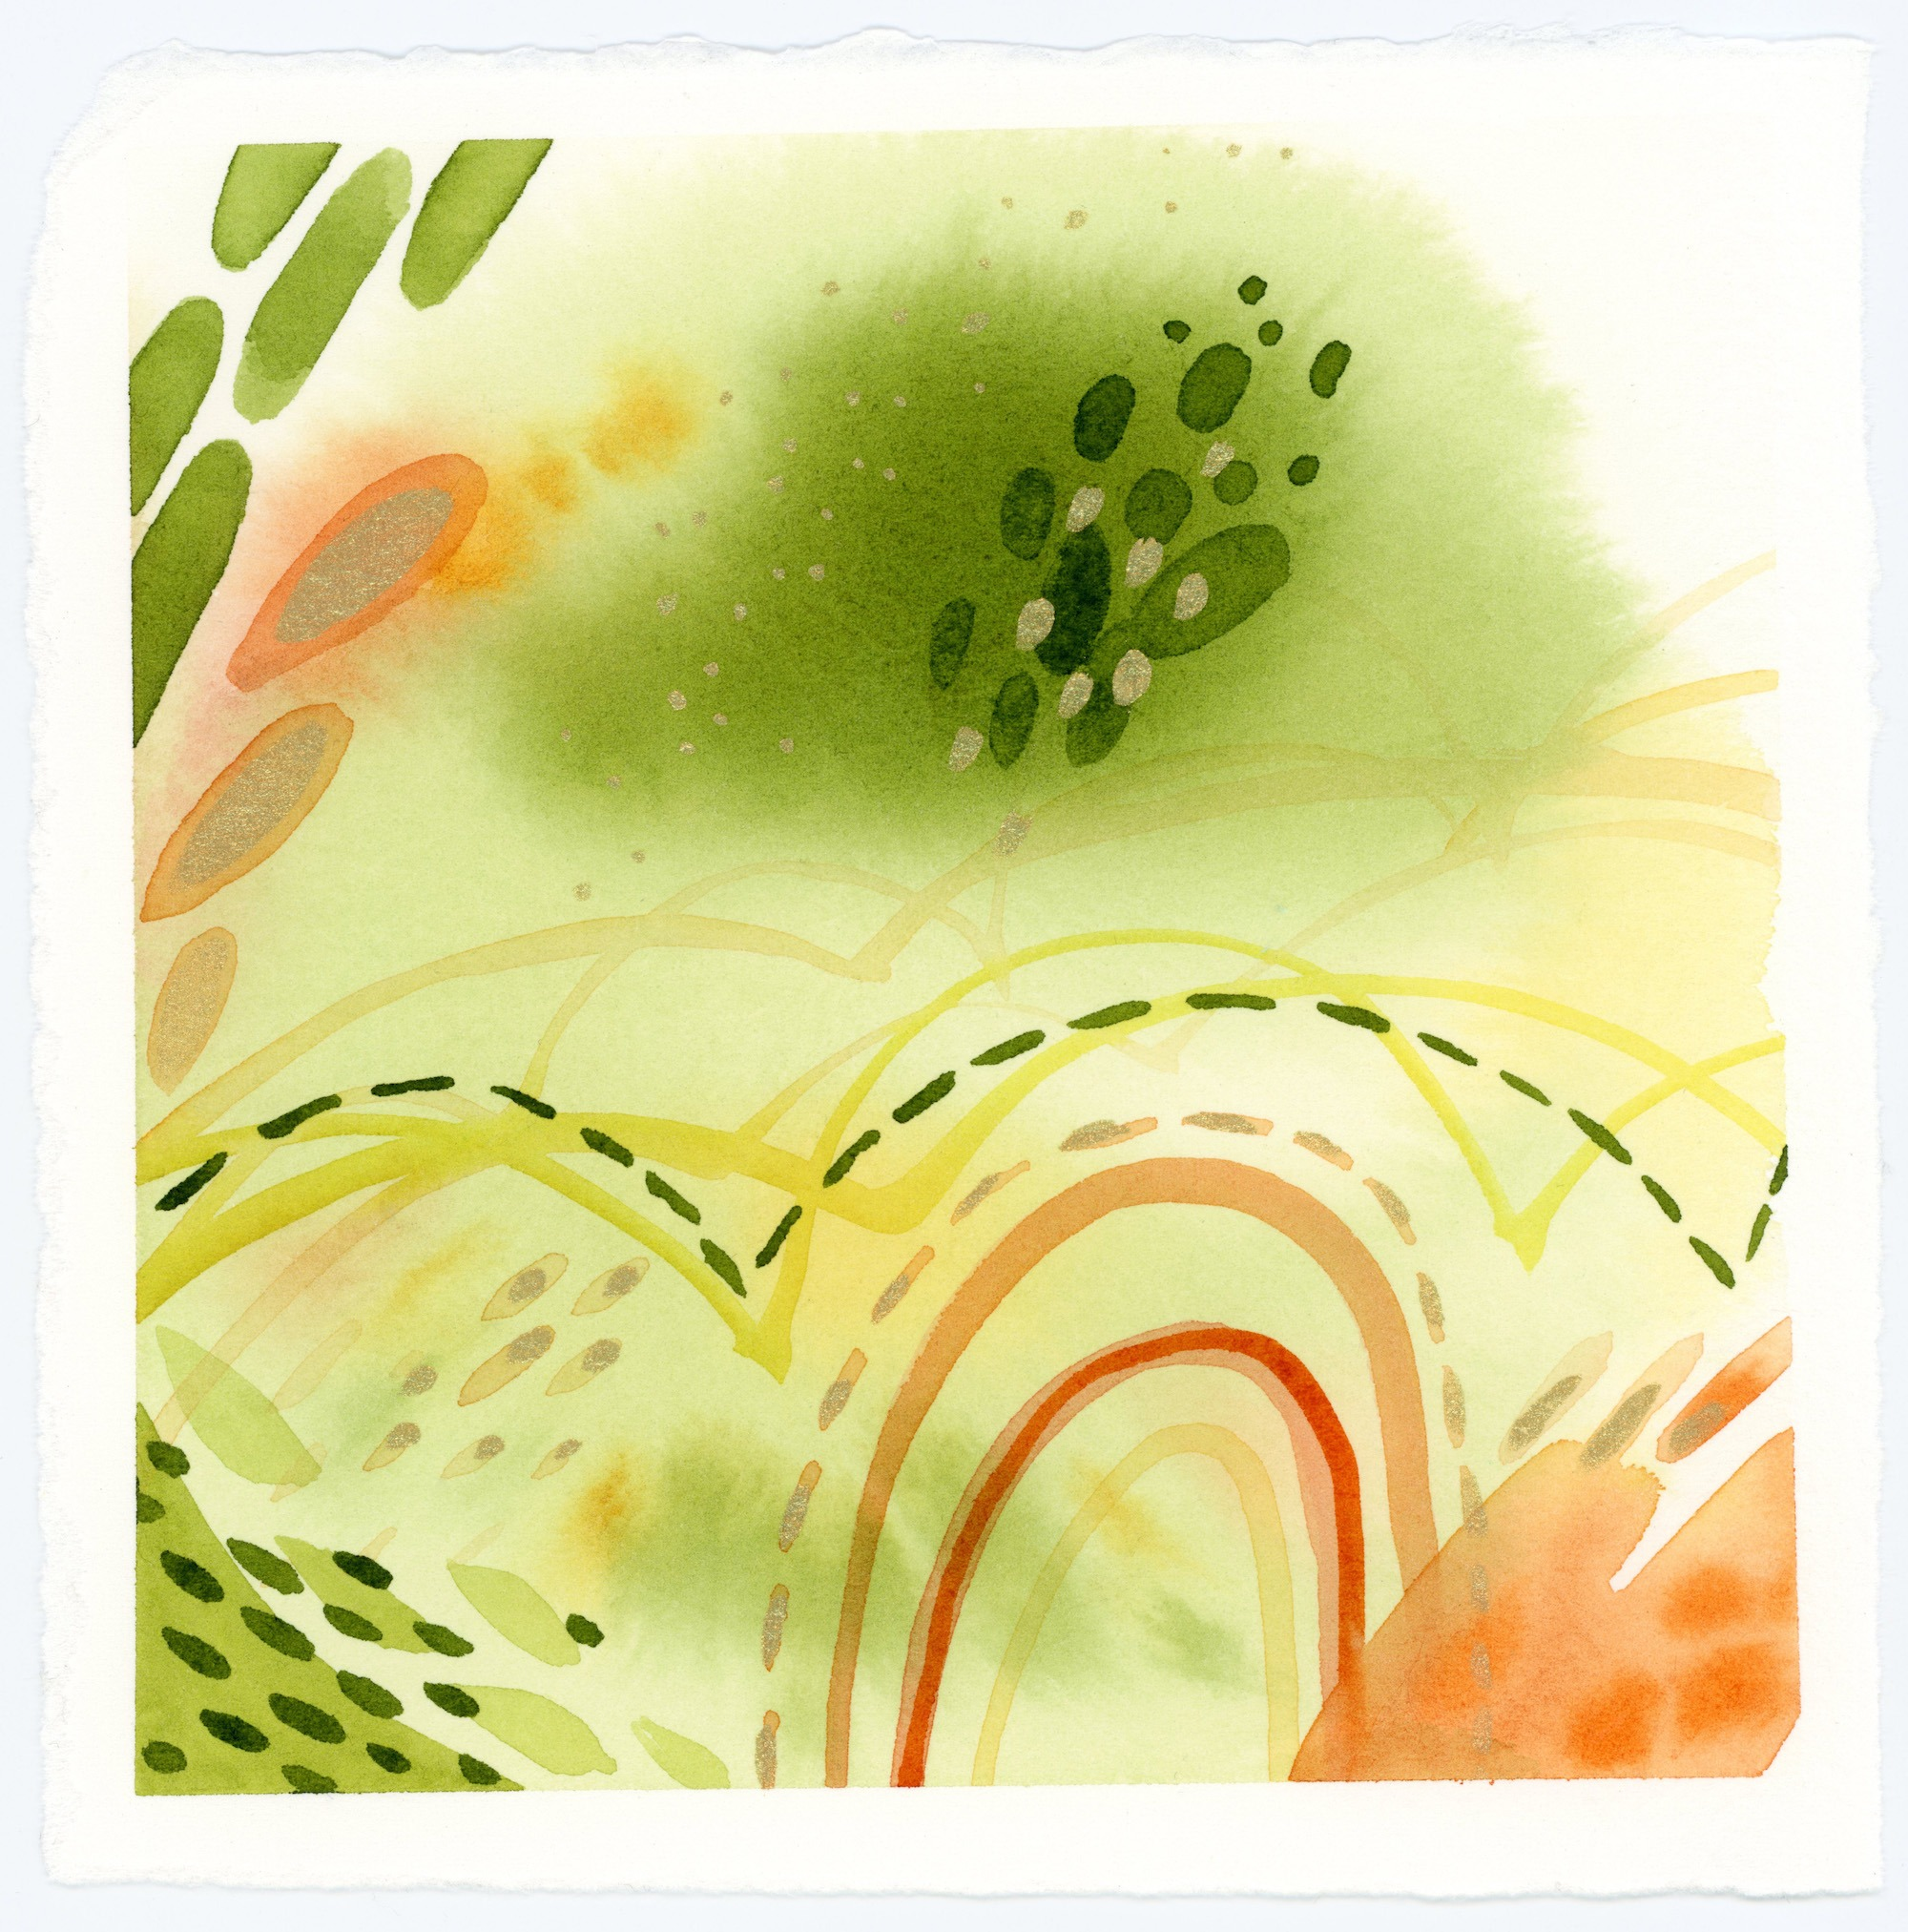 Green & Orange abstract watercolor painting